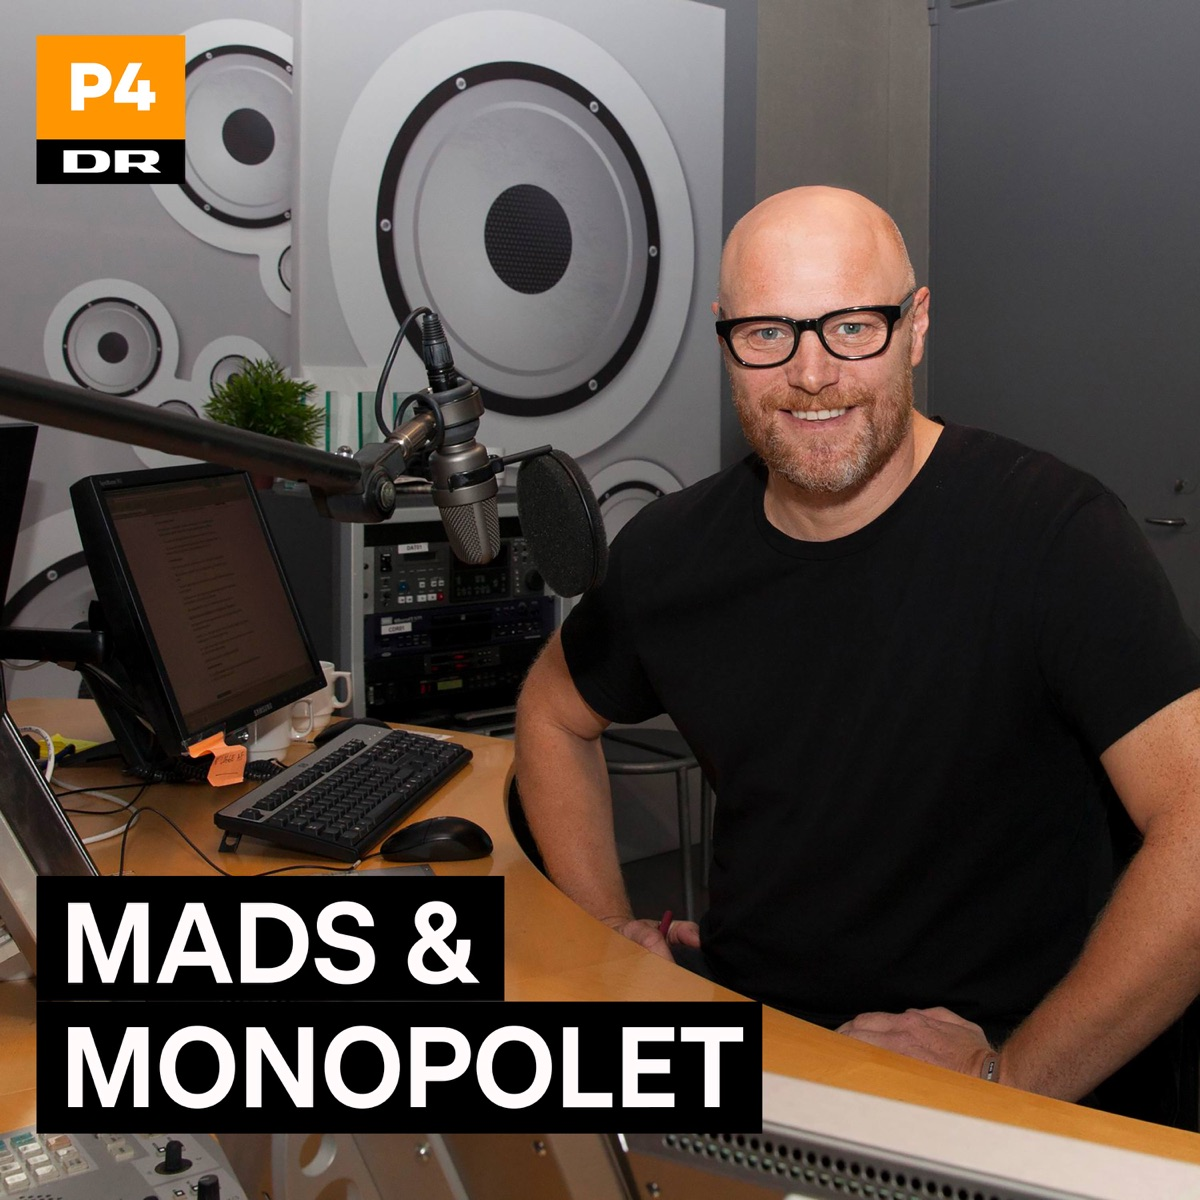 Mads & Monopolet - podcast - 6. jun 2020